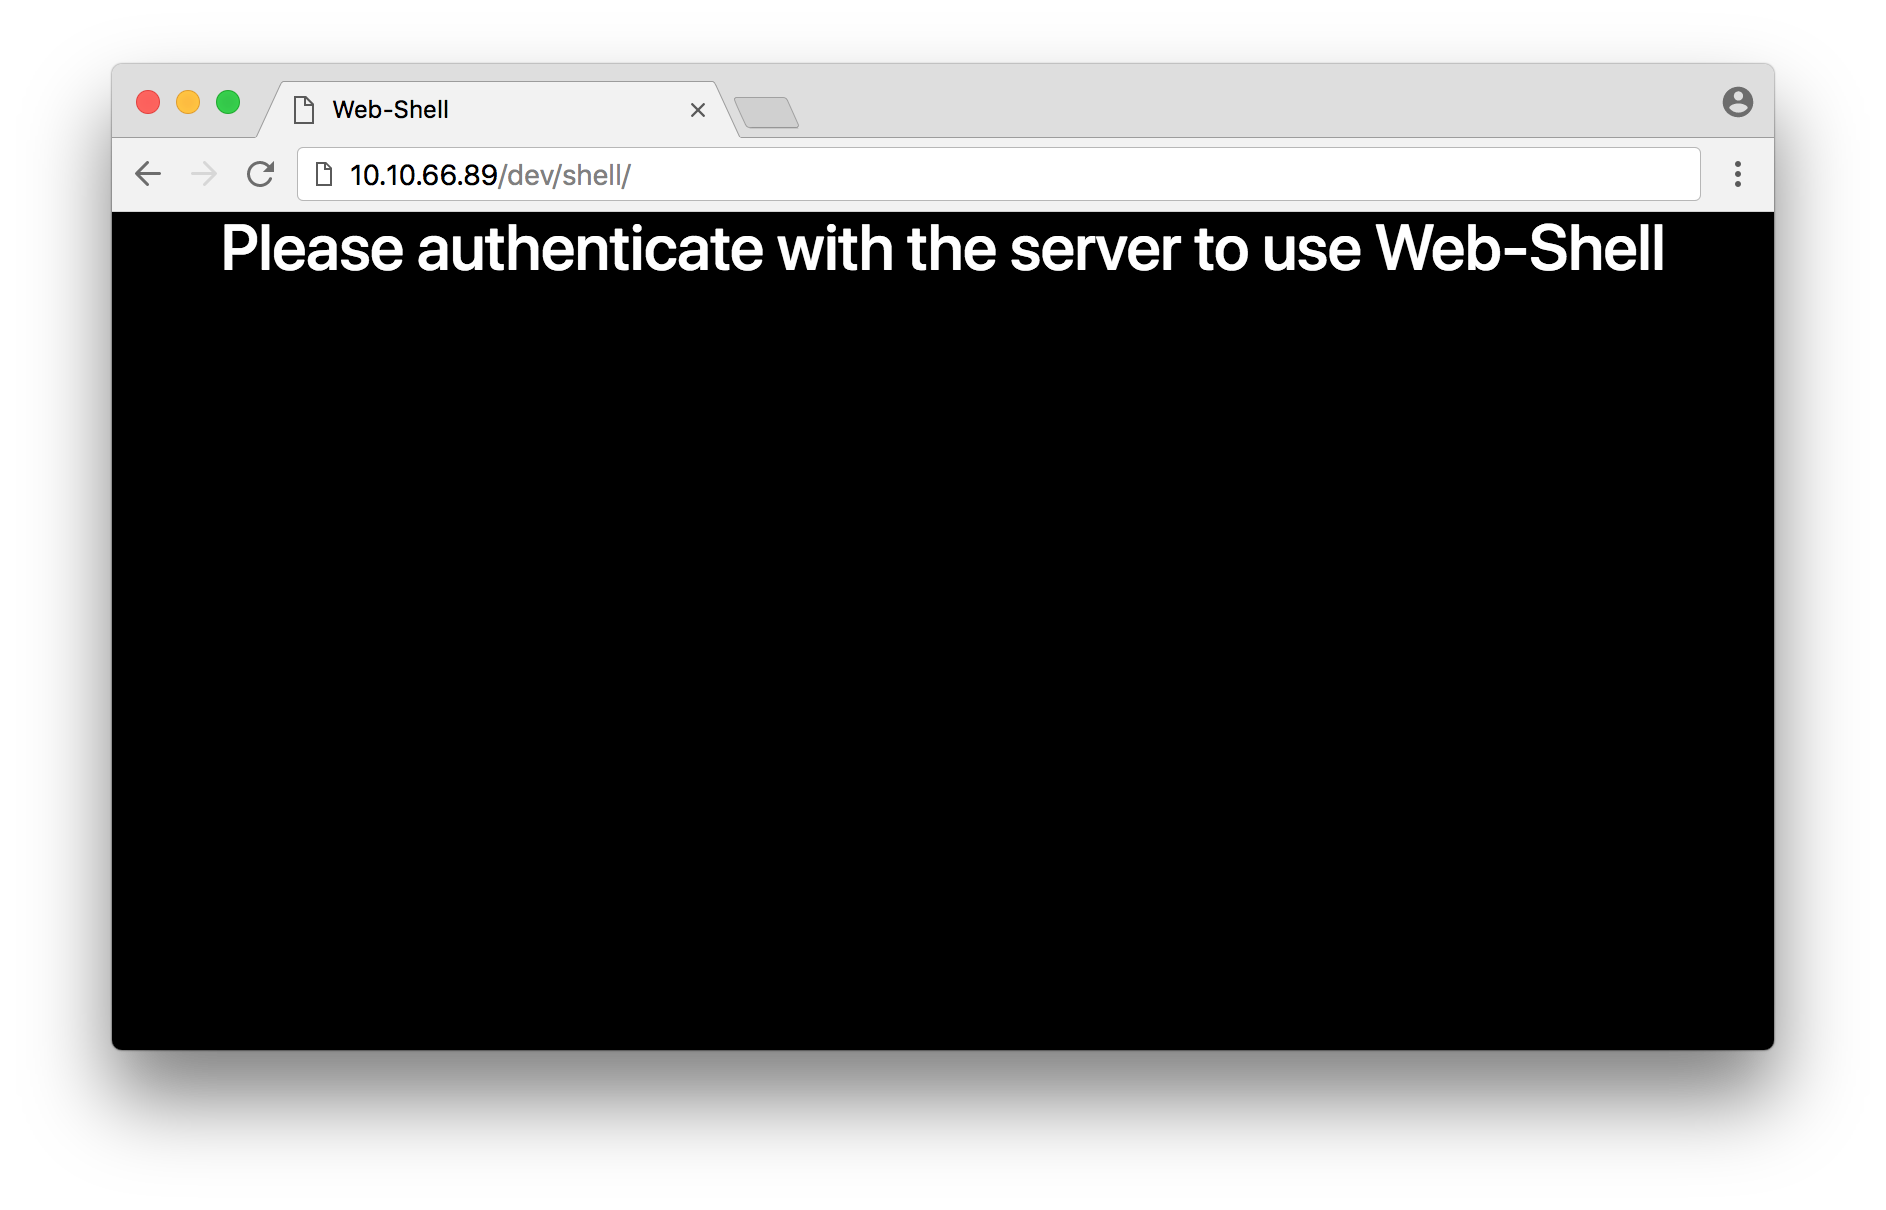 webshell_unauth